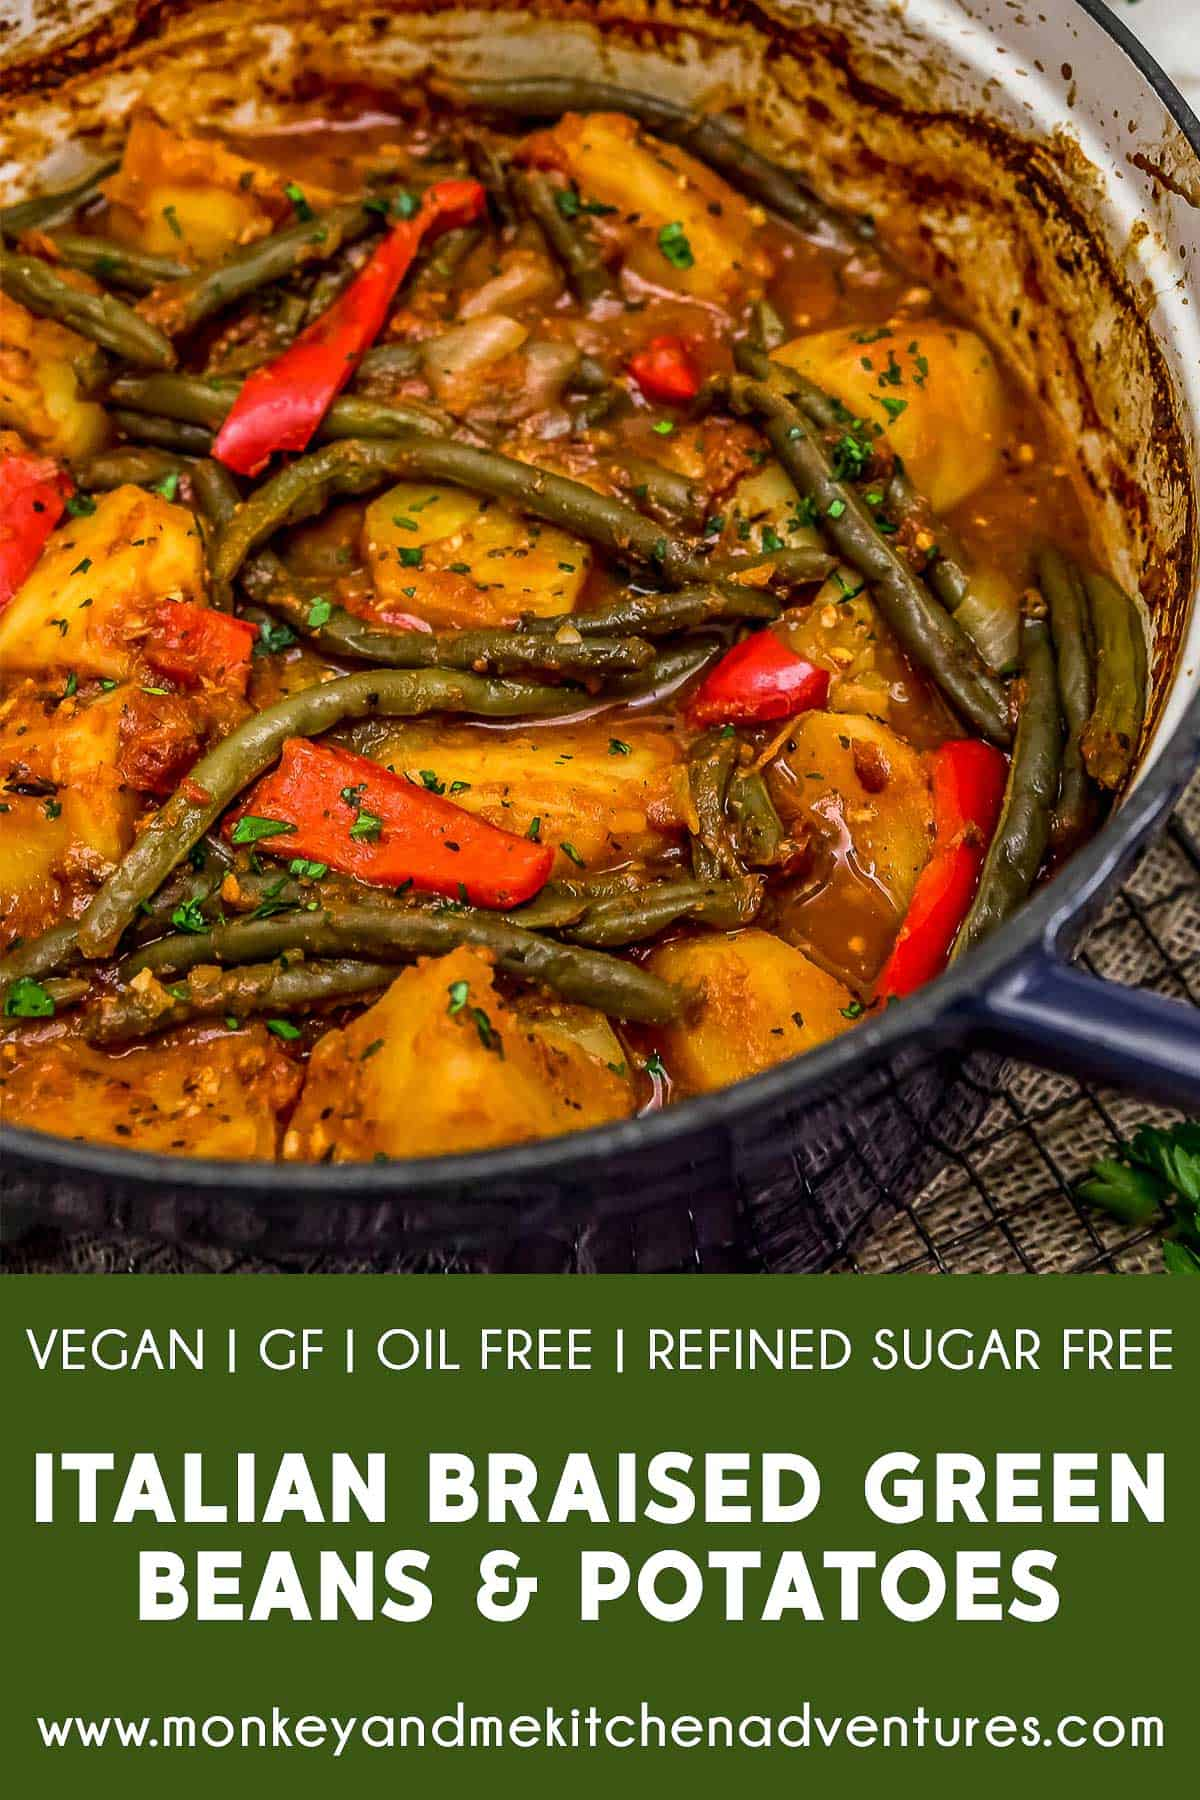 Italian Braised Green Beans and Potatoes with text description